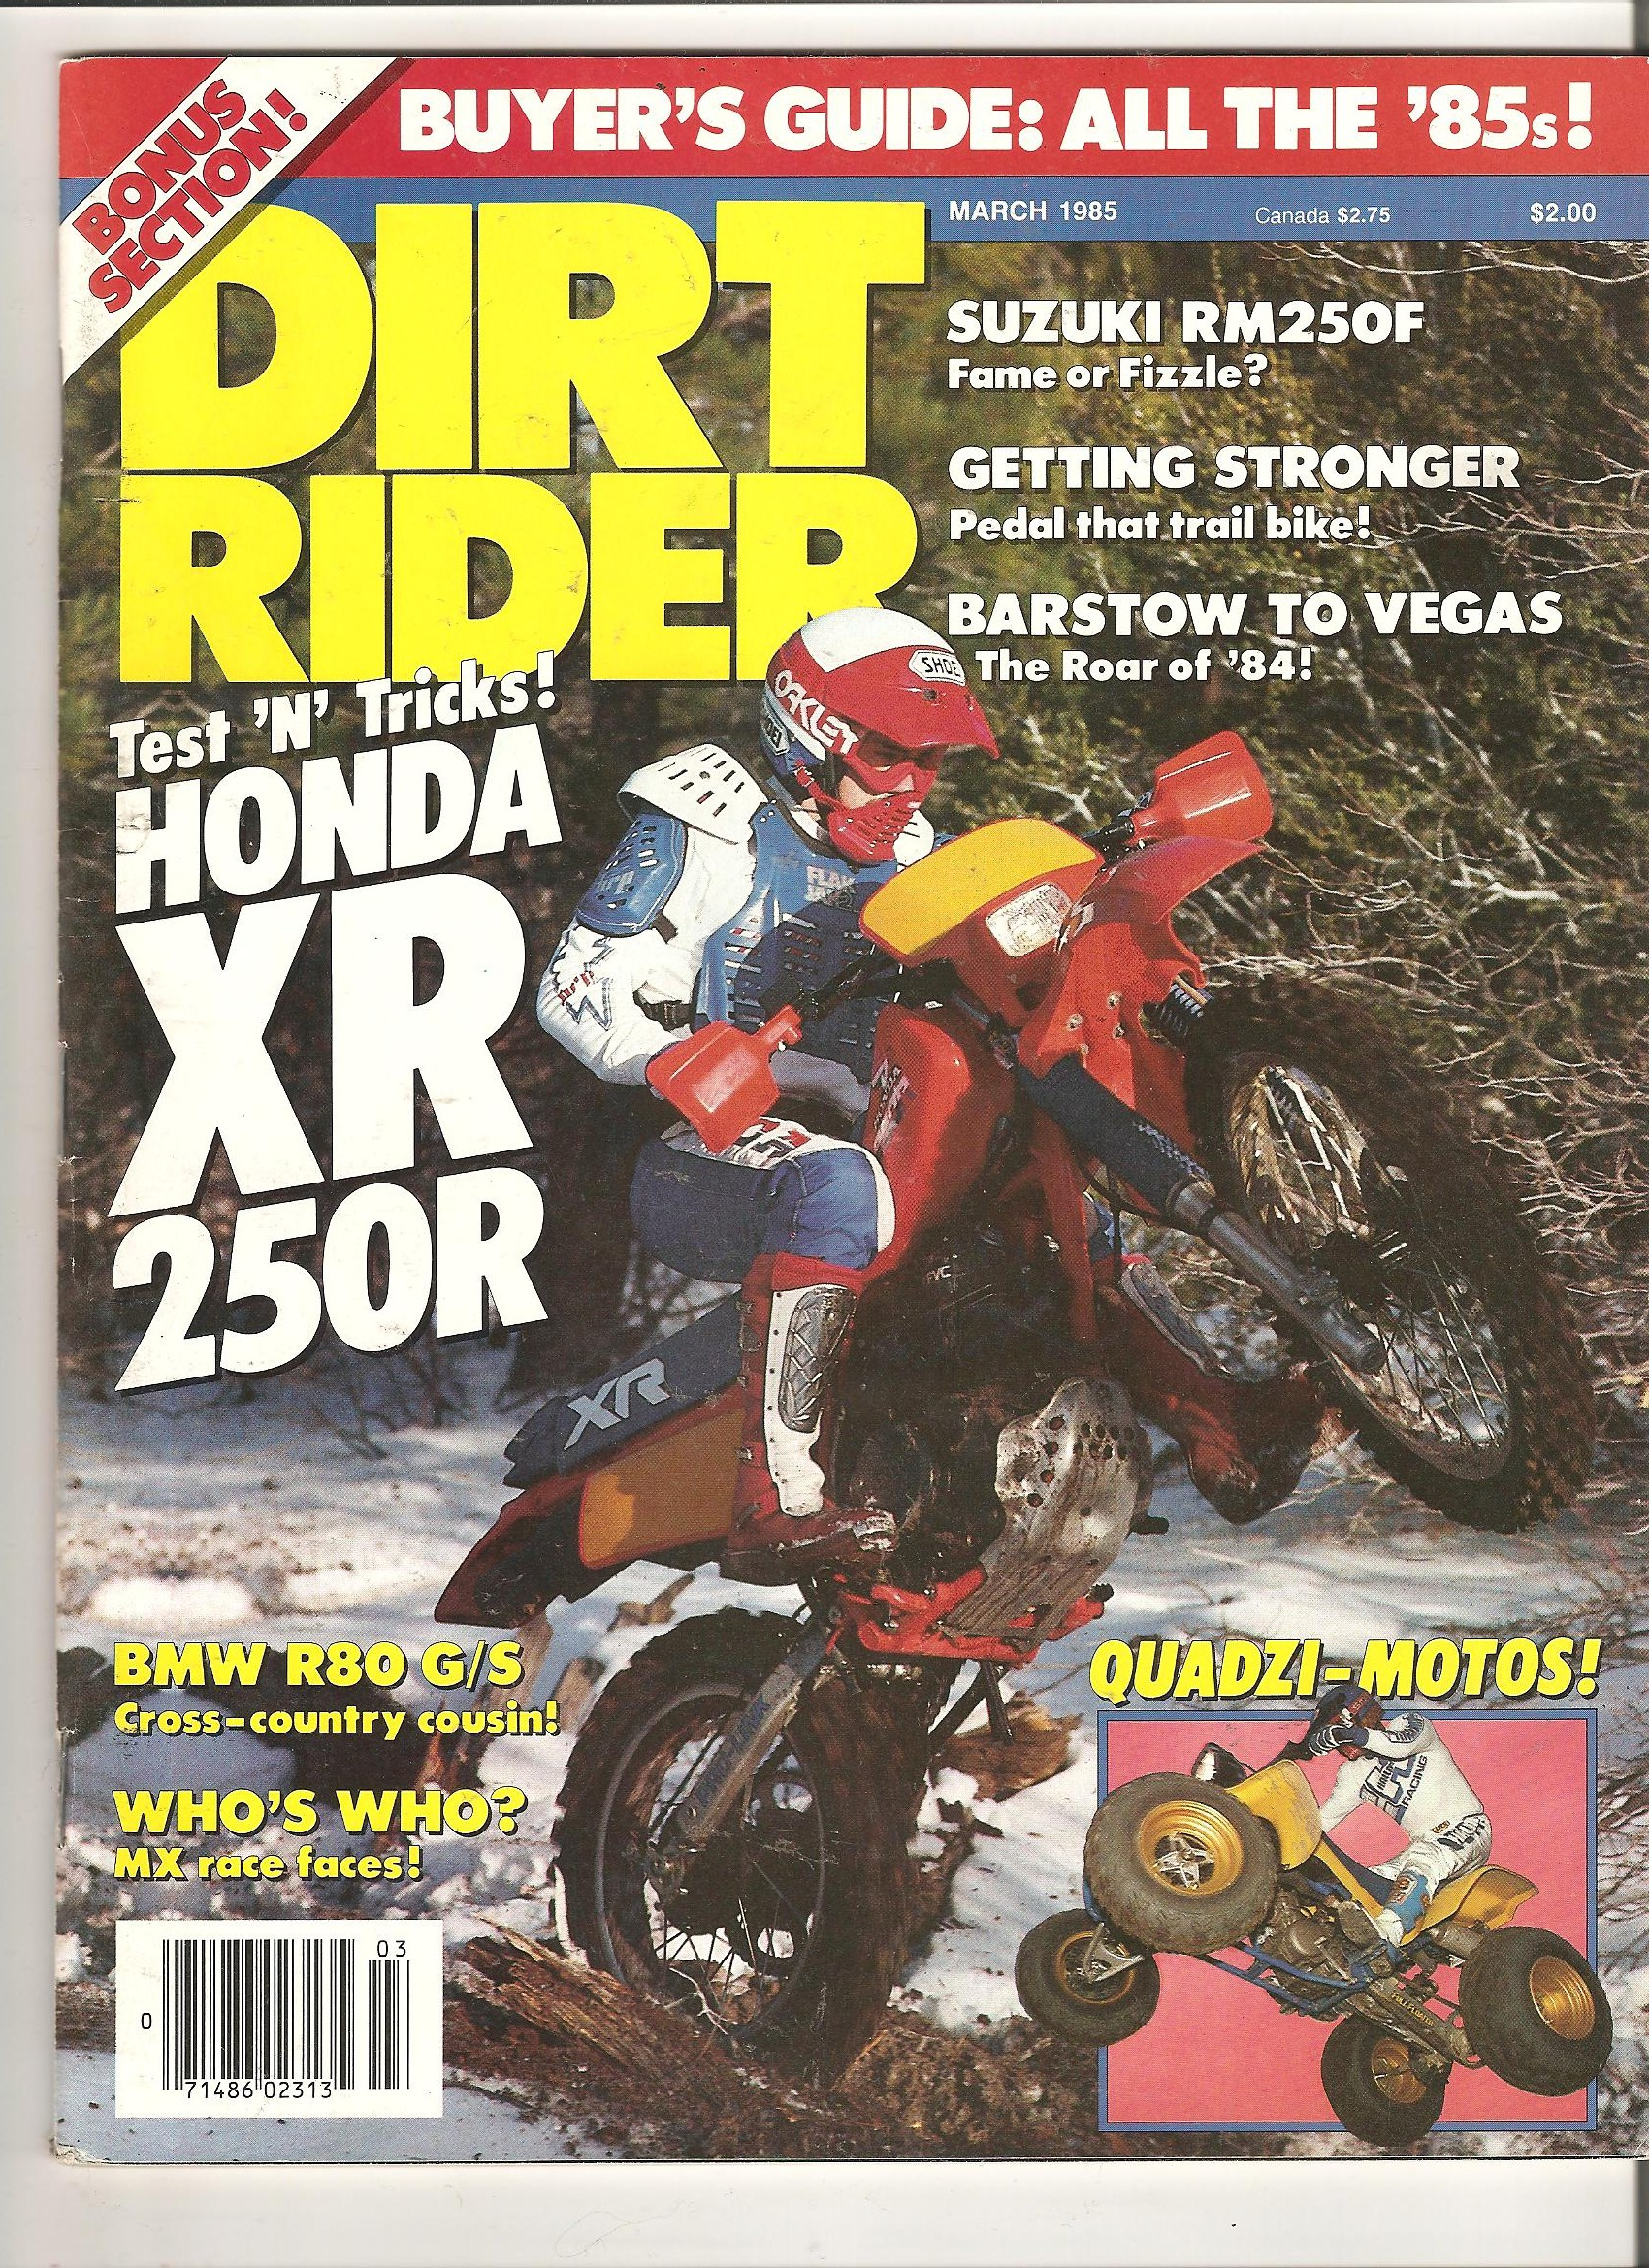 frontcover.jpg